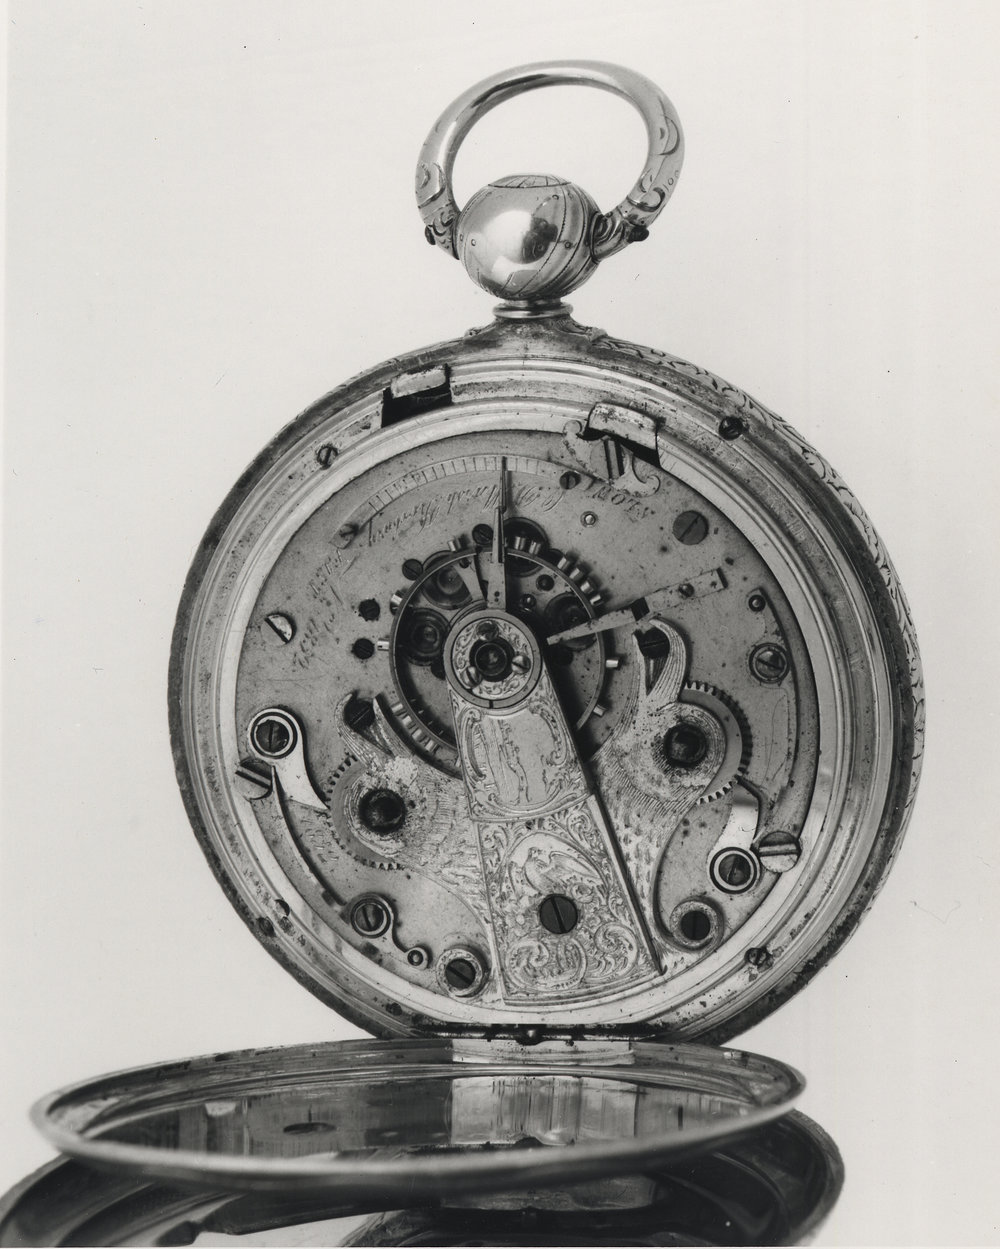 American Watch Company Prototype movemen from 1852.jpg